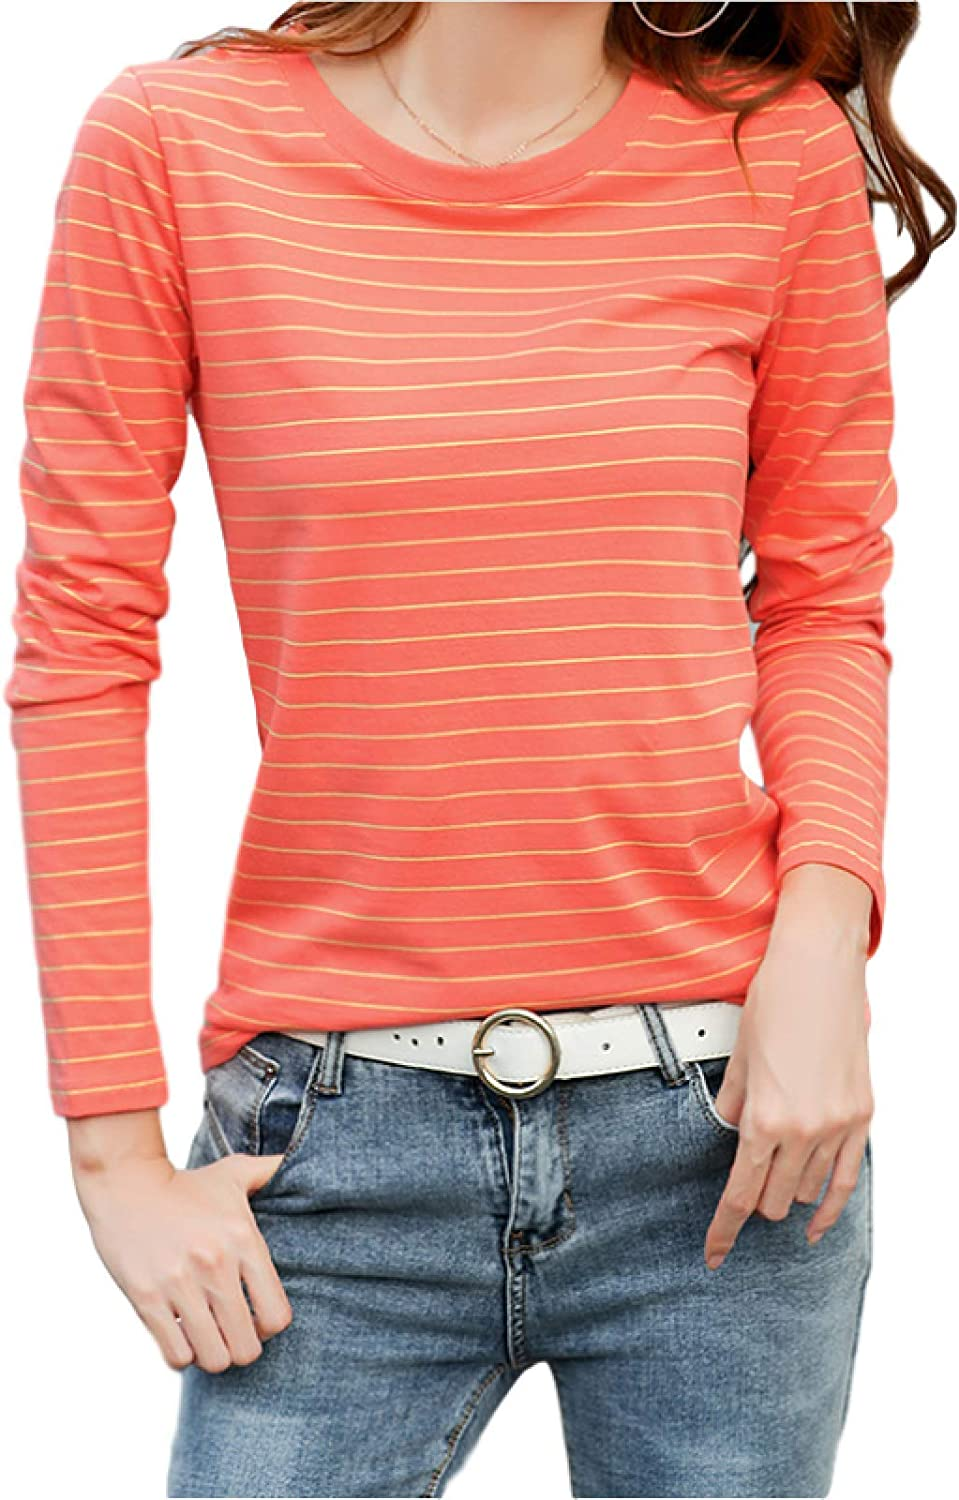 Women's Spring and Autumn Max Boston Mall 65% OFF Long Classic Top Striped Sleeve Print